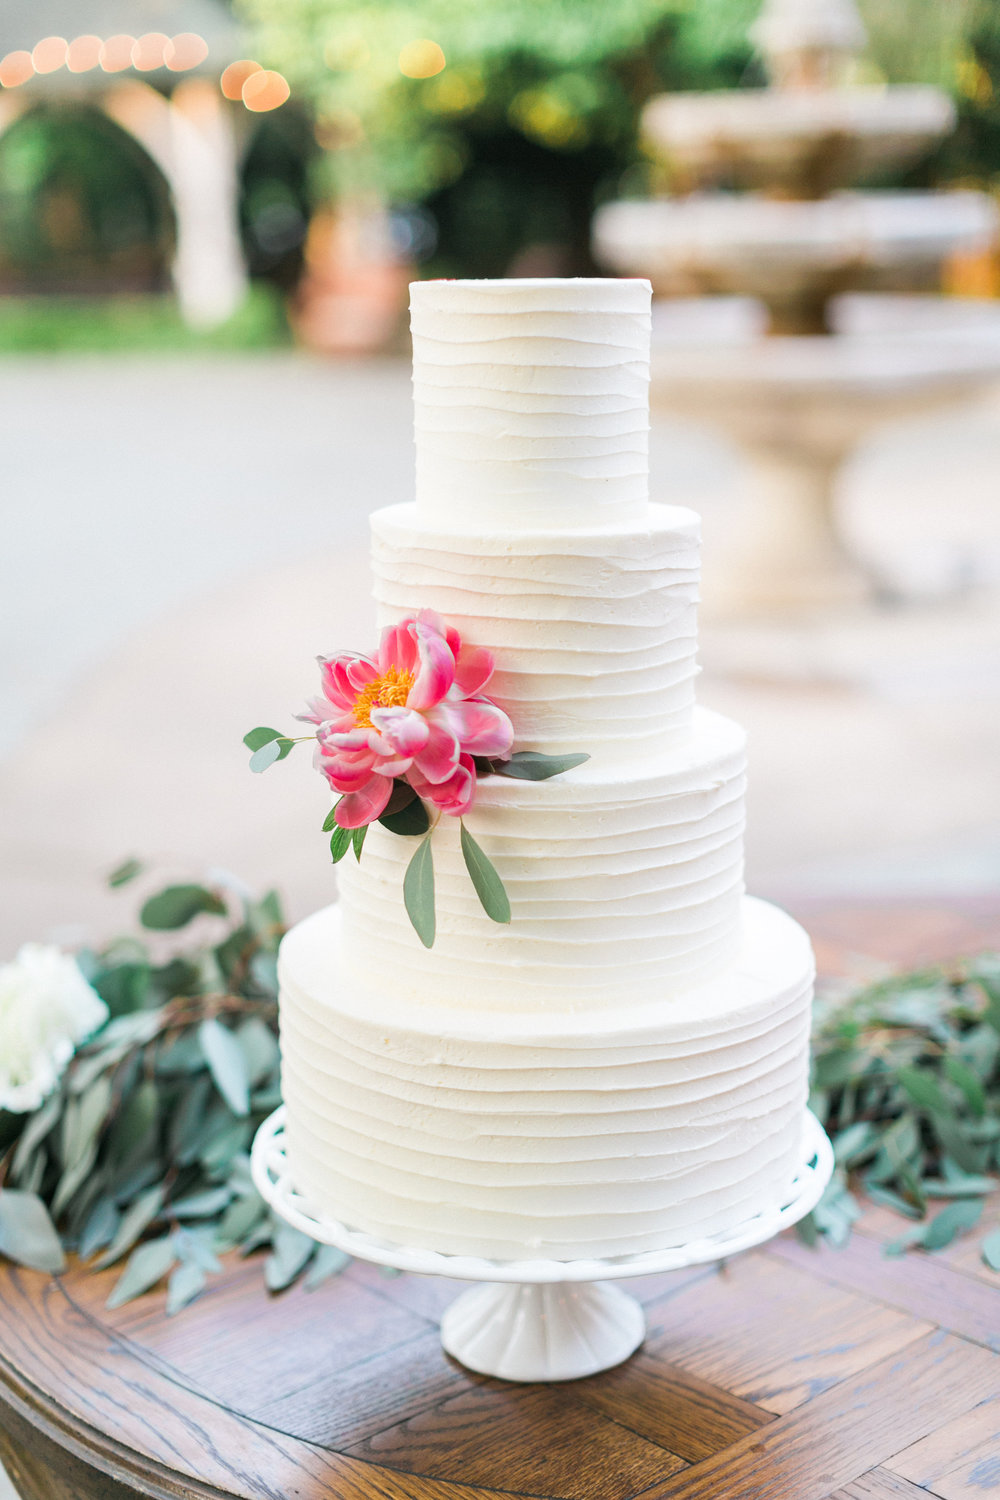 custom-wedding-cake-white-horizontal-texture-sugarbeesweets.jpg